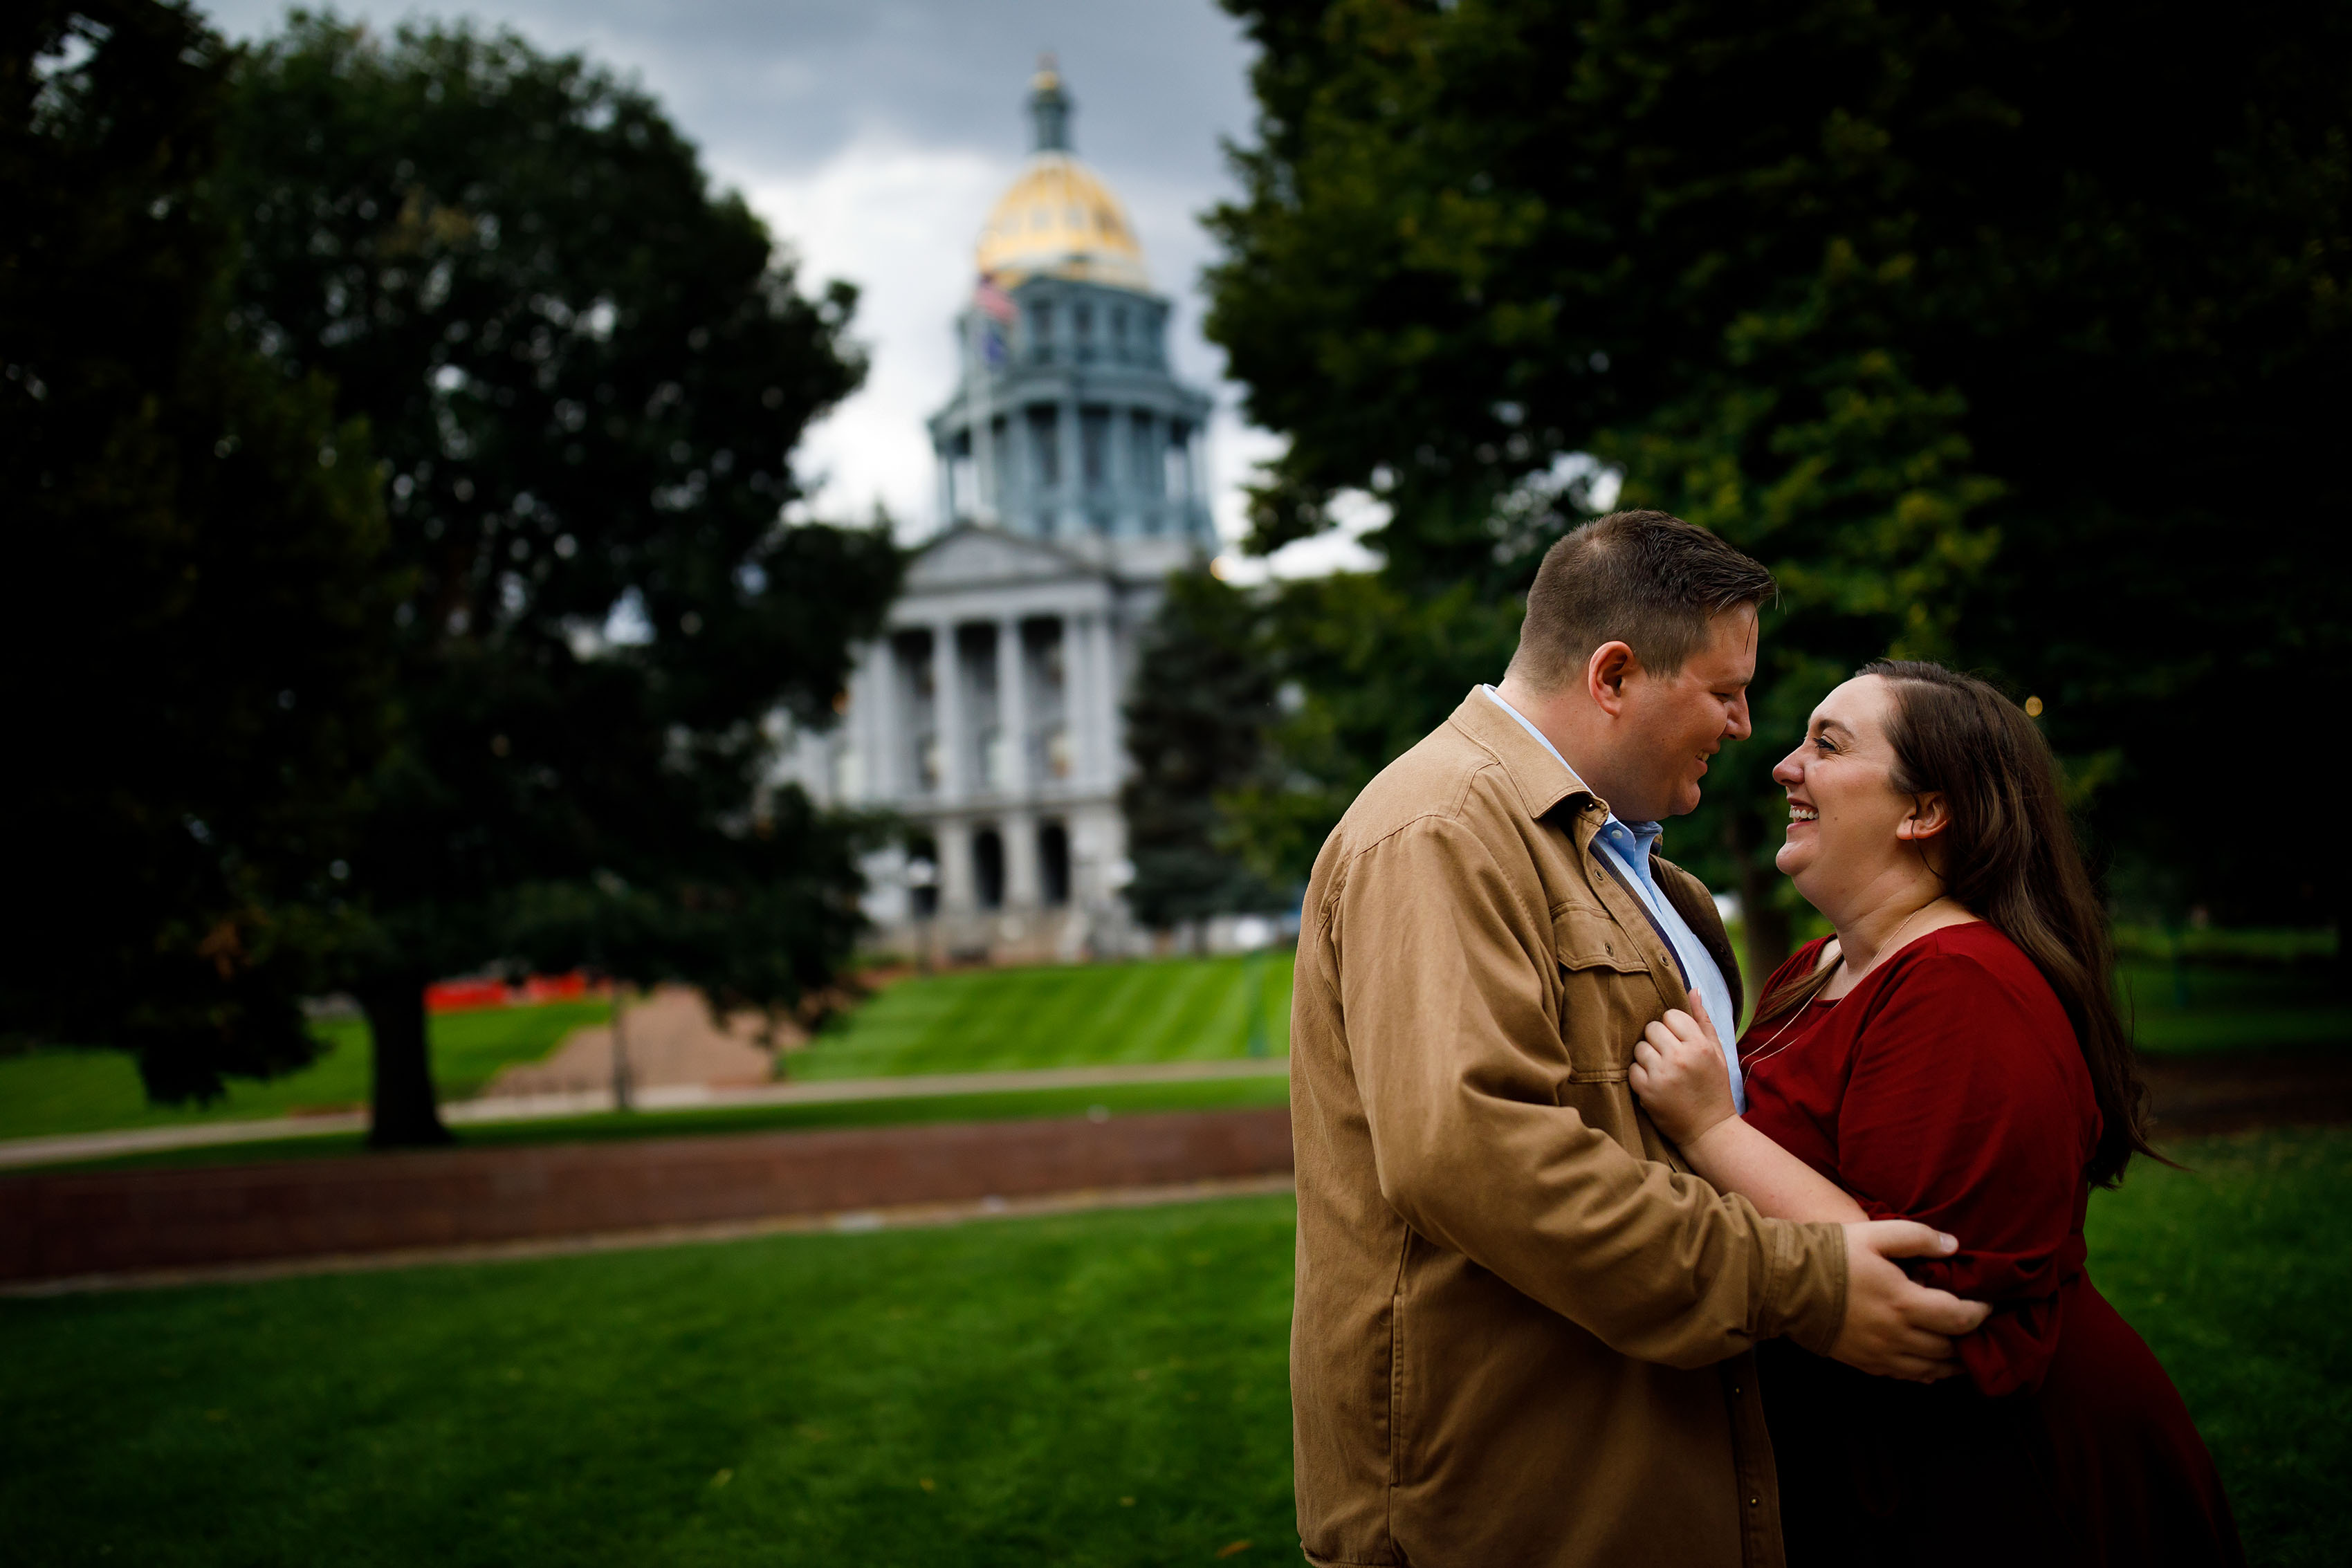 Matt and Katie share a moment during their engagement near the Colorado State Capitol